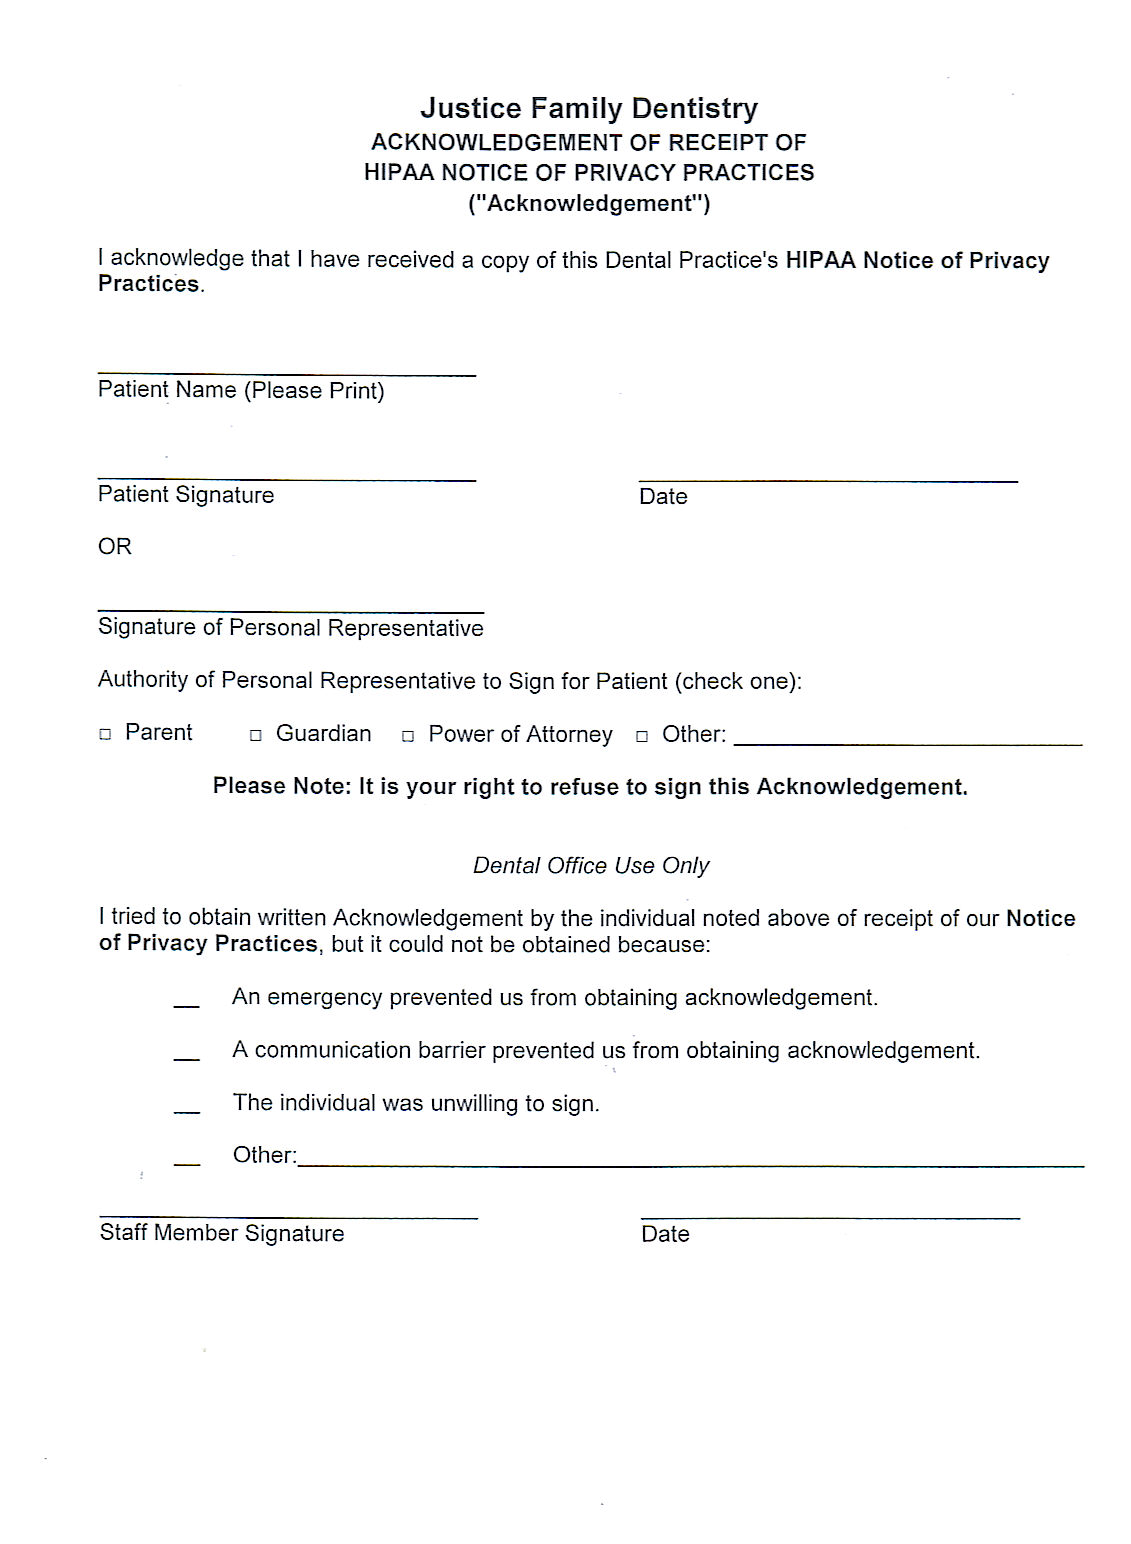 Superb Printable Patient Forms  Free Printable Doctor Forms